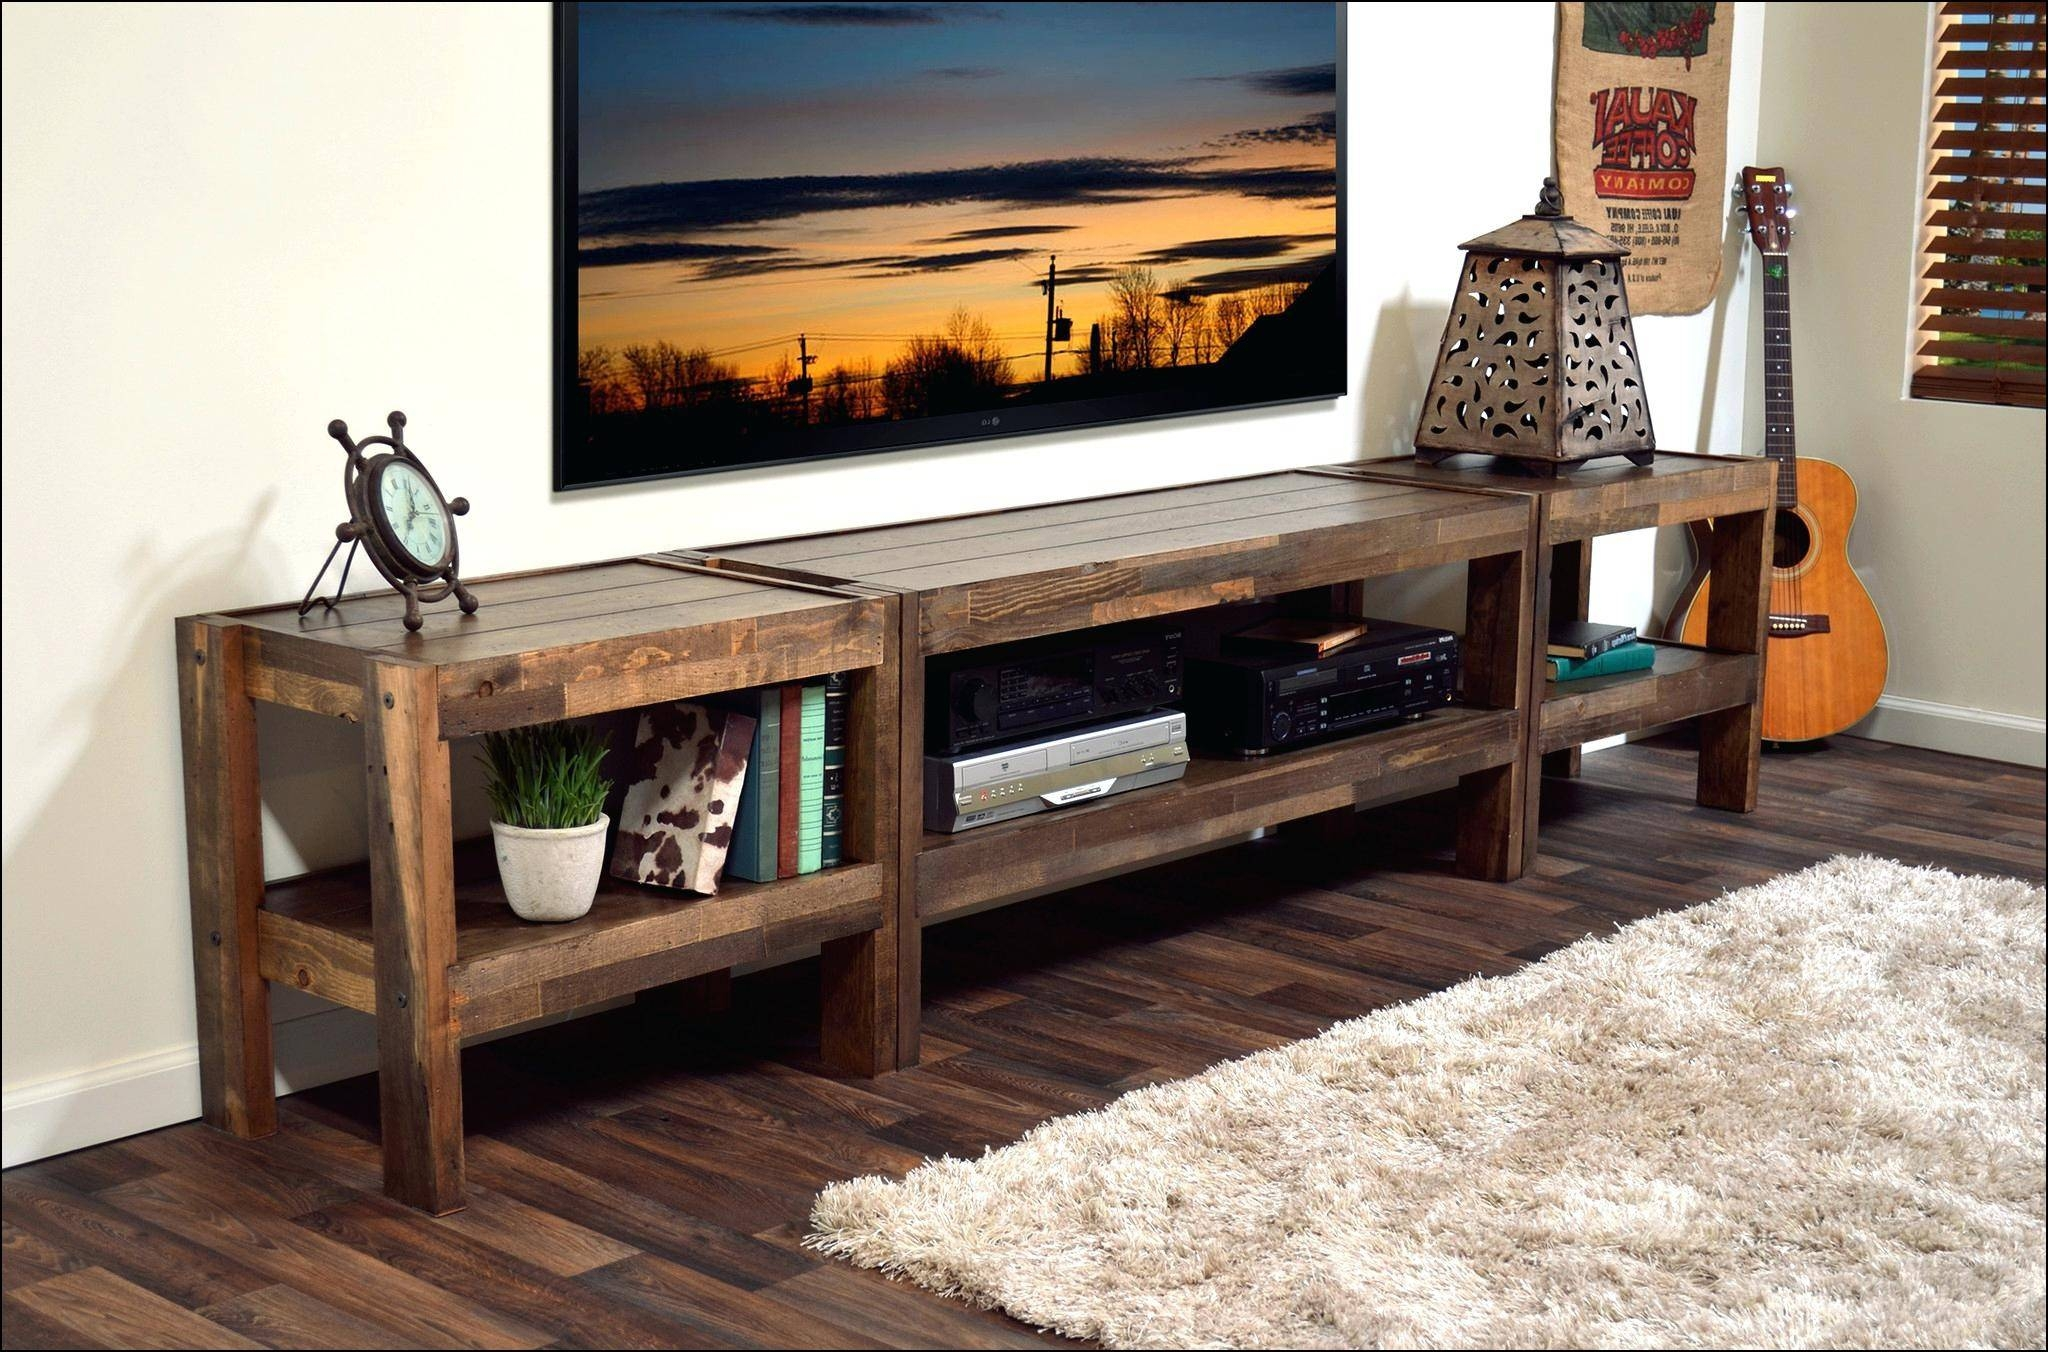 Tv Stand And Coffee Table Set | Best Room Design regarding Coffee Tables and Tv Stands Matching (Image 29 of 30)